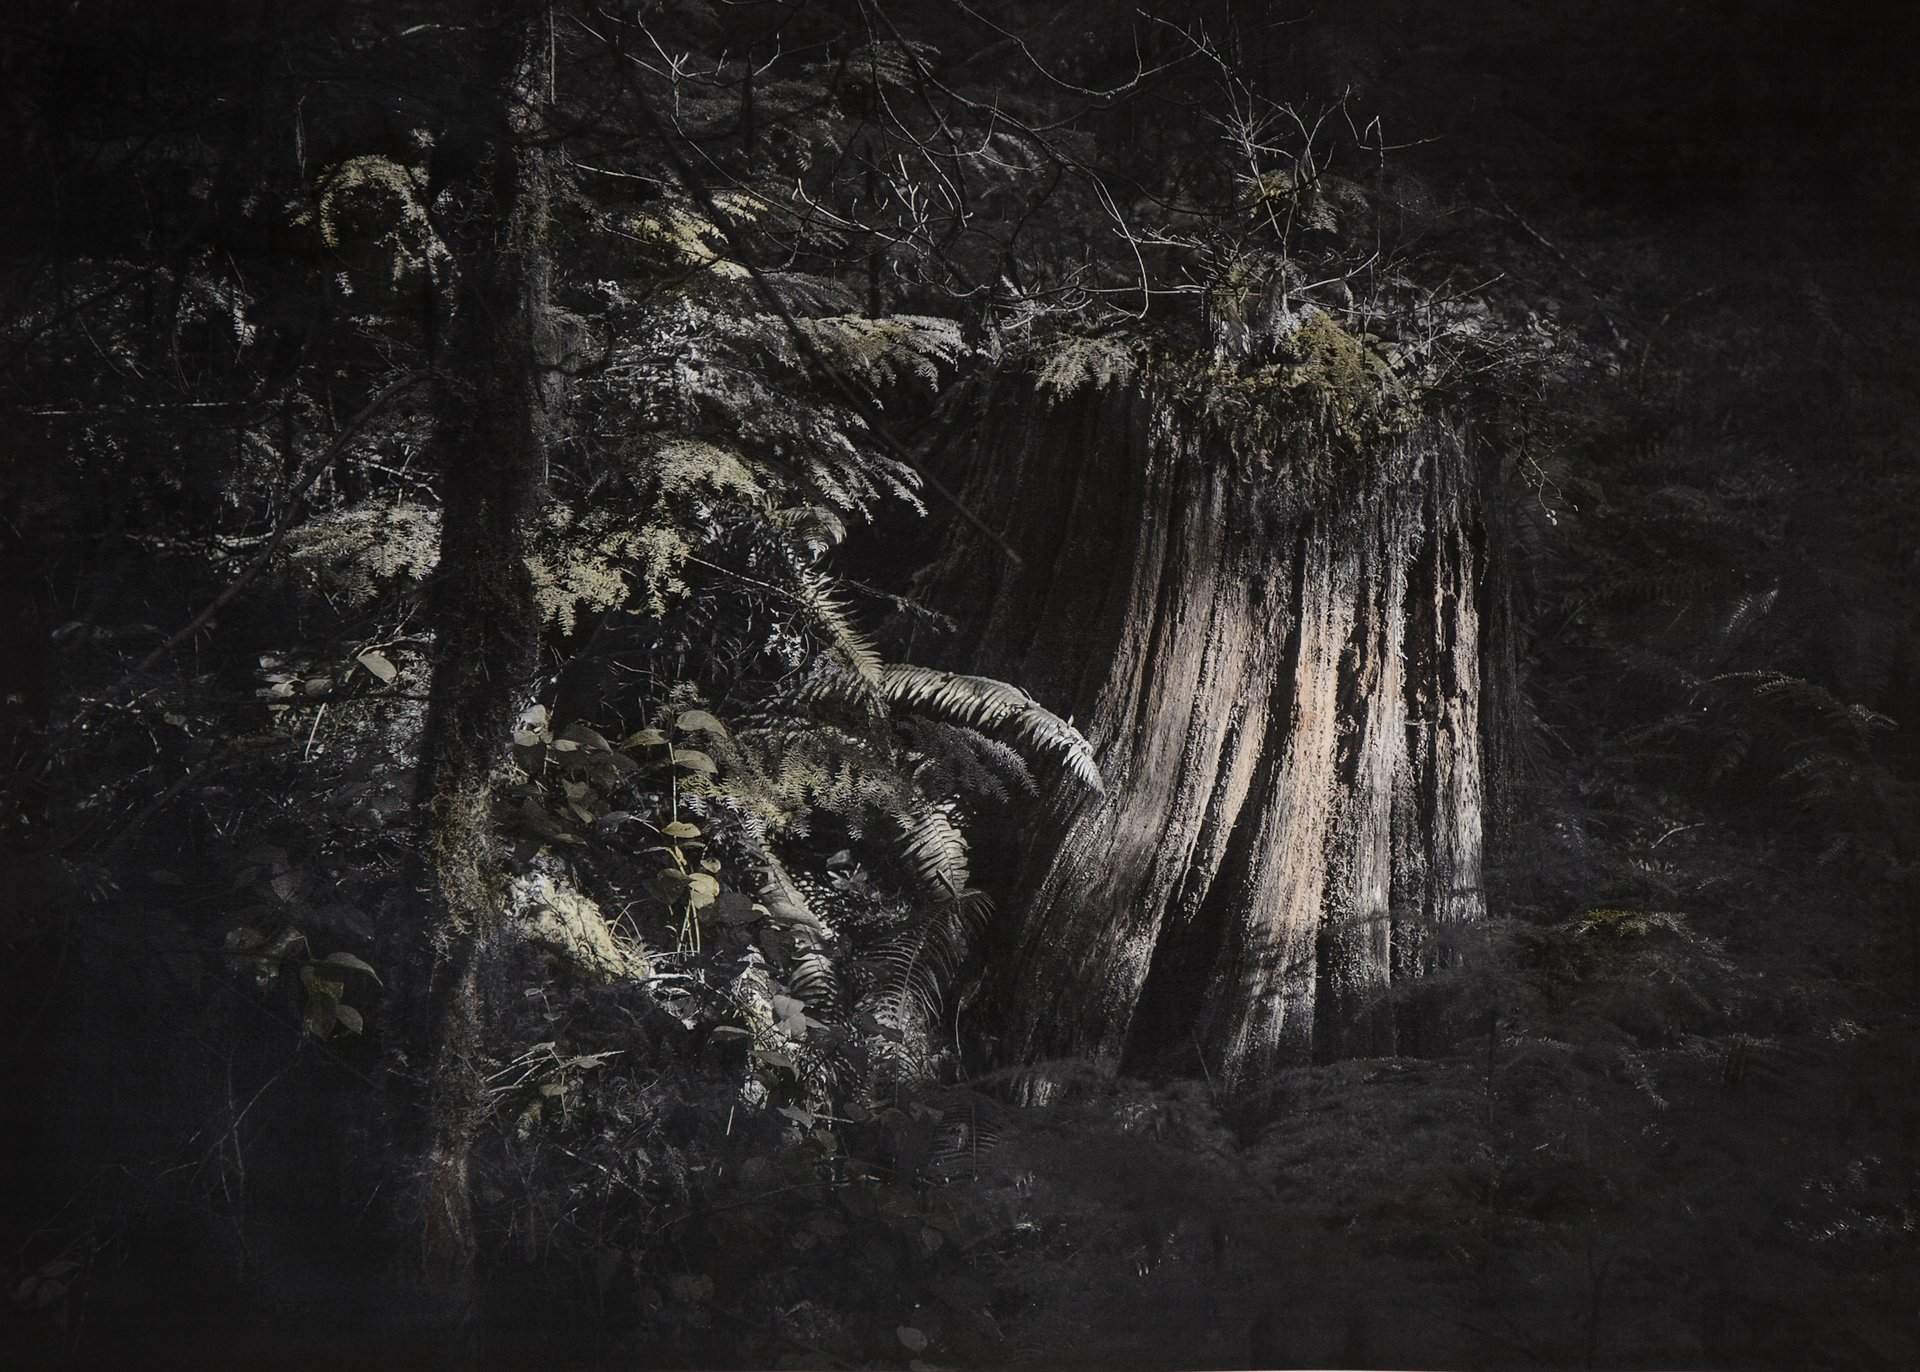 Stump 2015.23 -- 22x30 inch hand-colored photo